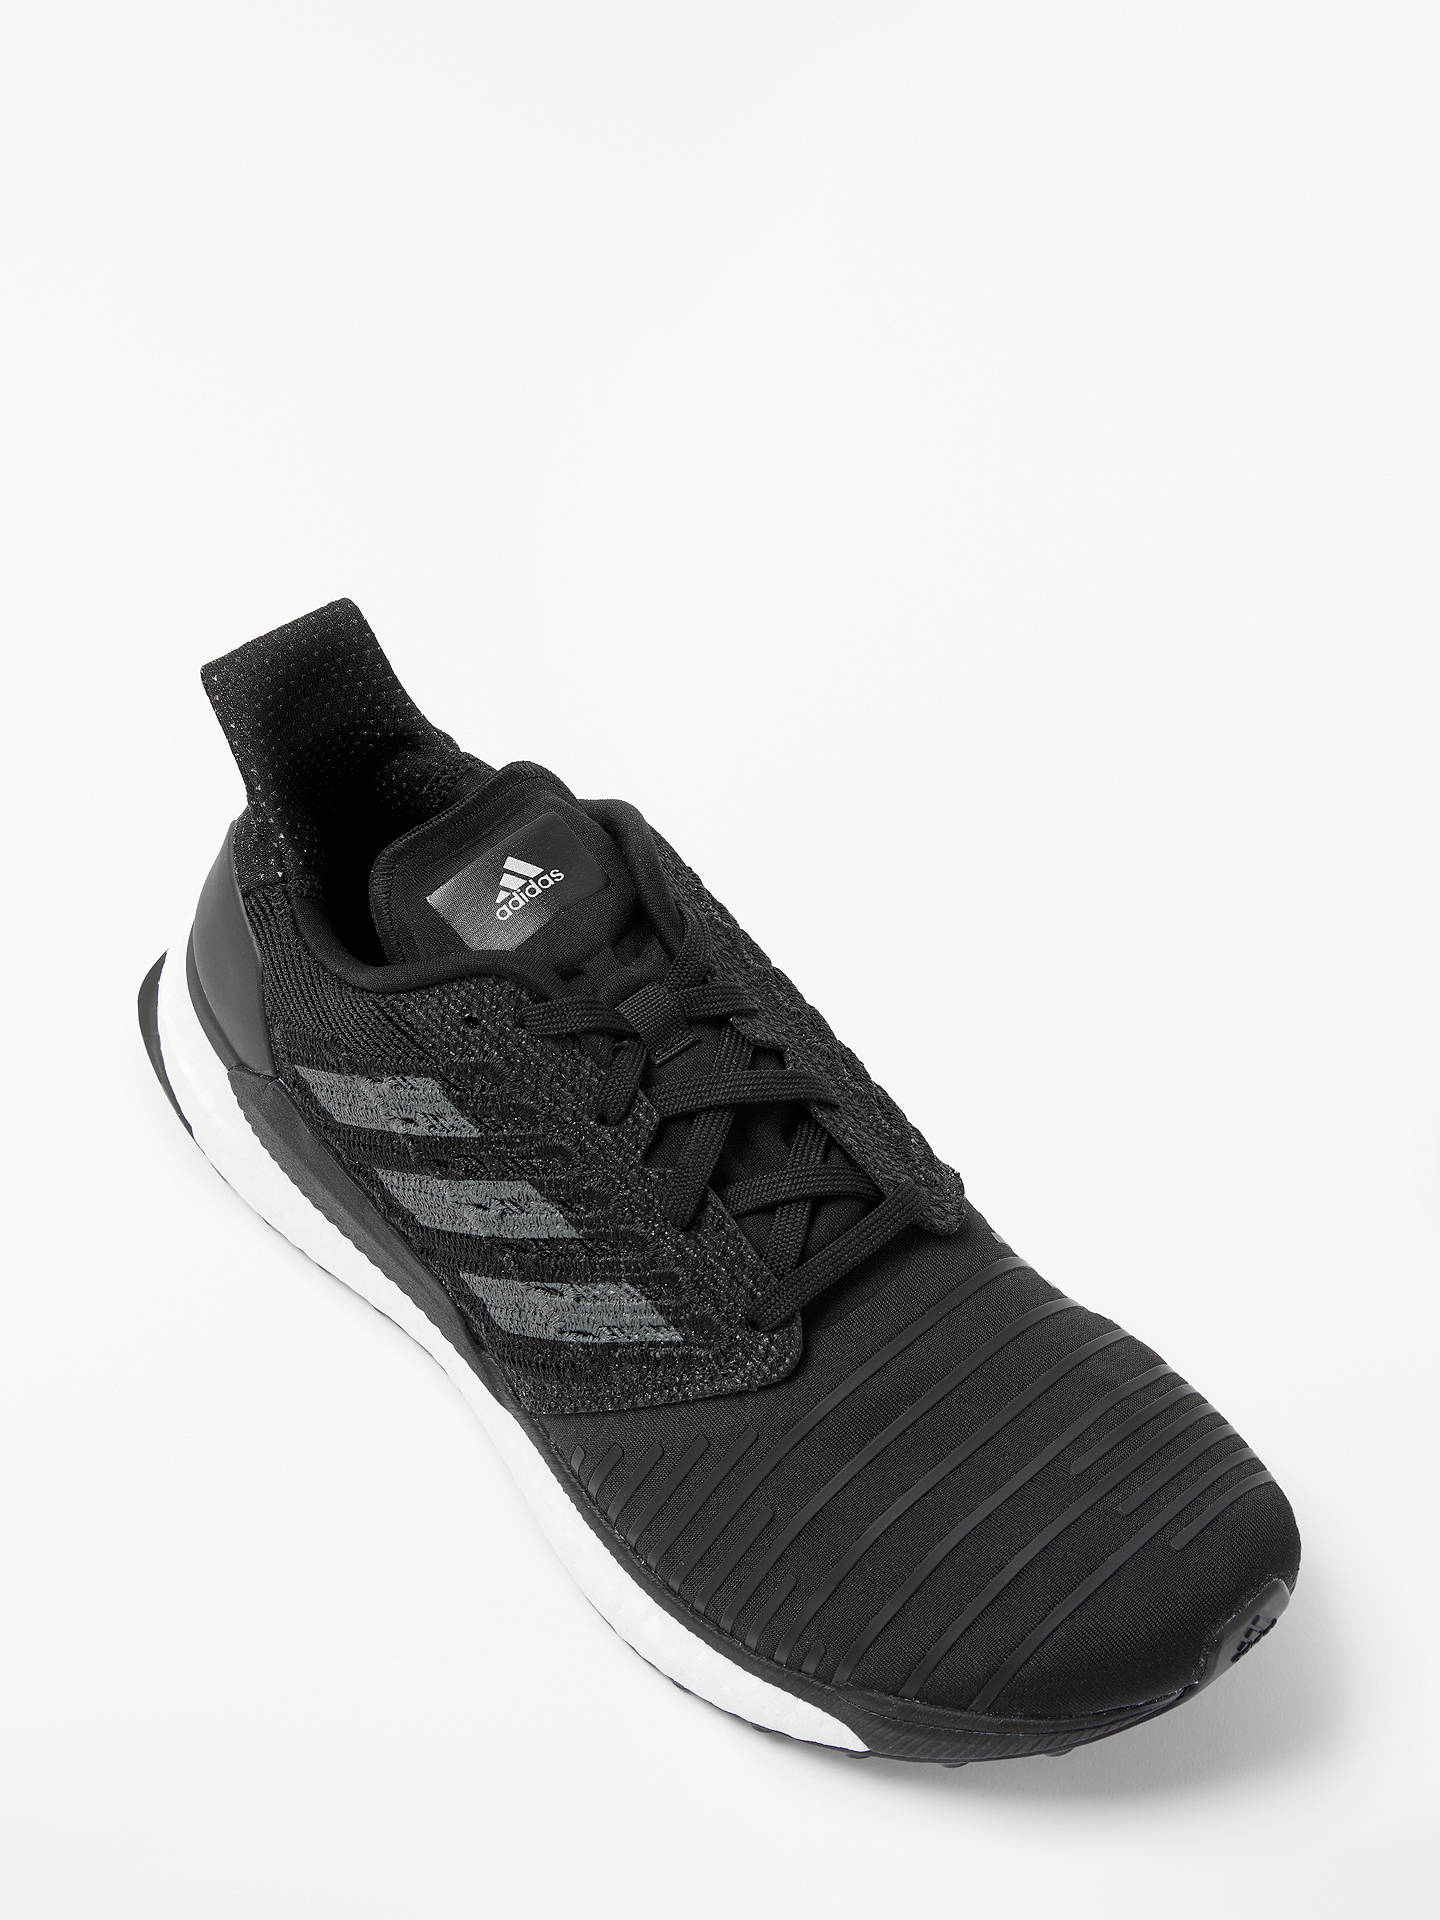 low priced aeb7a 1495a ... Buyadidas Solar Boost Mens Running Shoes, Core Black, 7 Online at  johnlewis.com